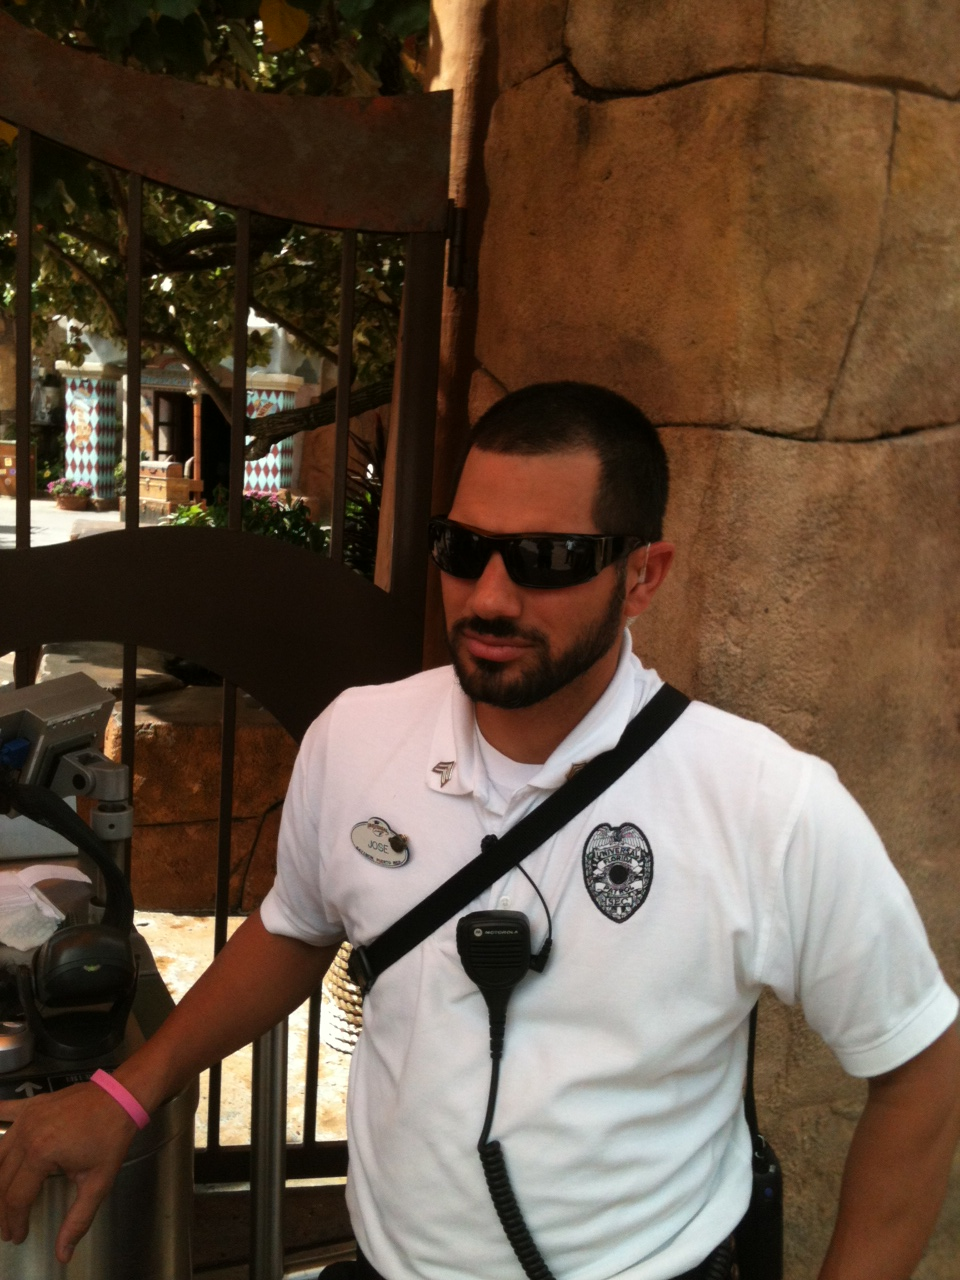 Universal Security Officer